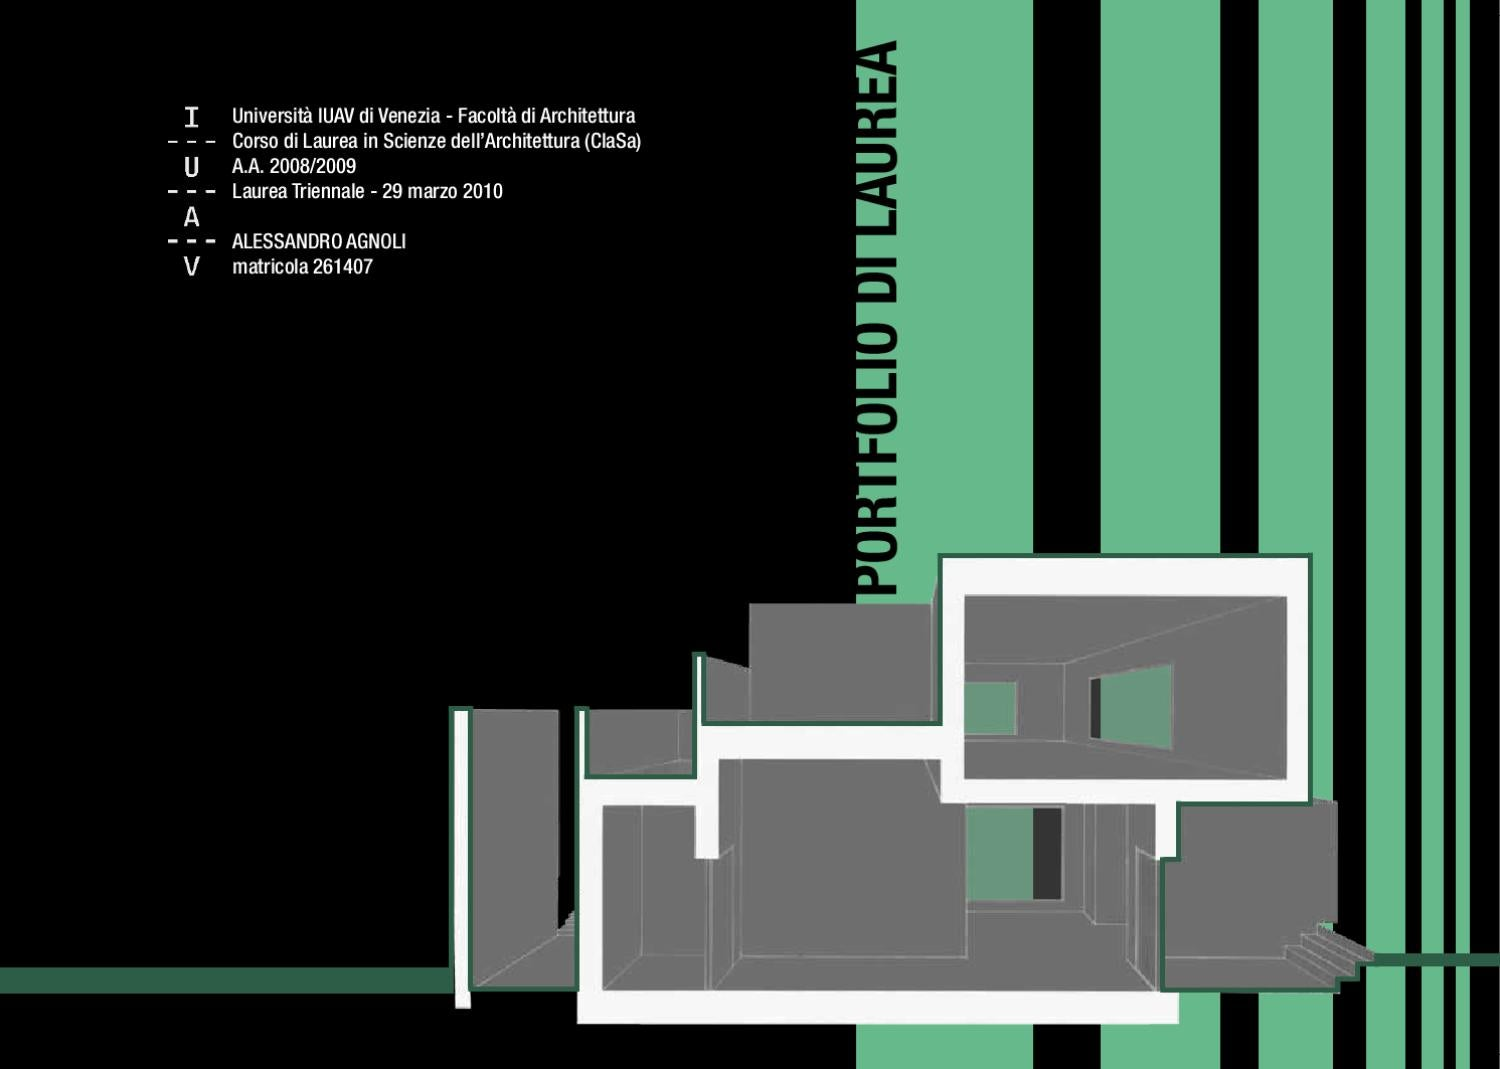 Eccezionale Gaetano De Francesco Architecture Portfolio IT by De Francesco  JS83